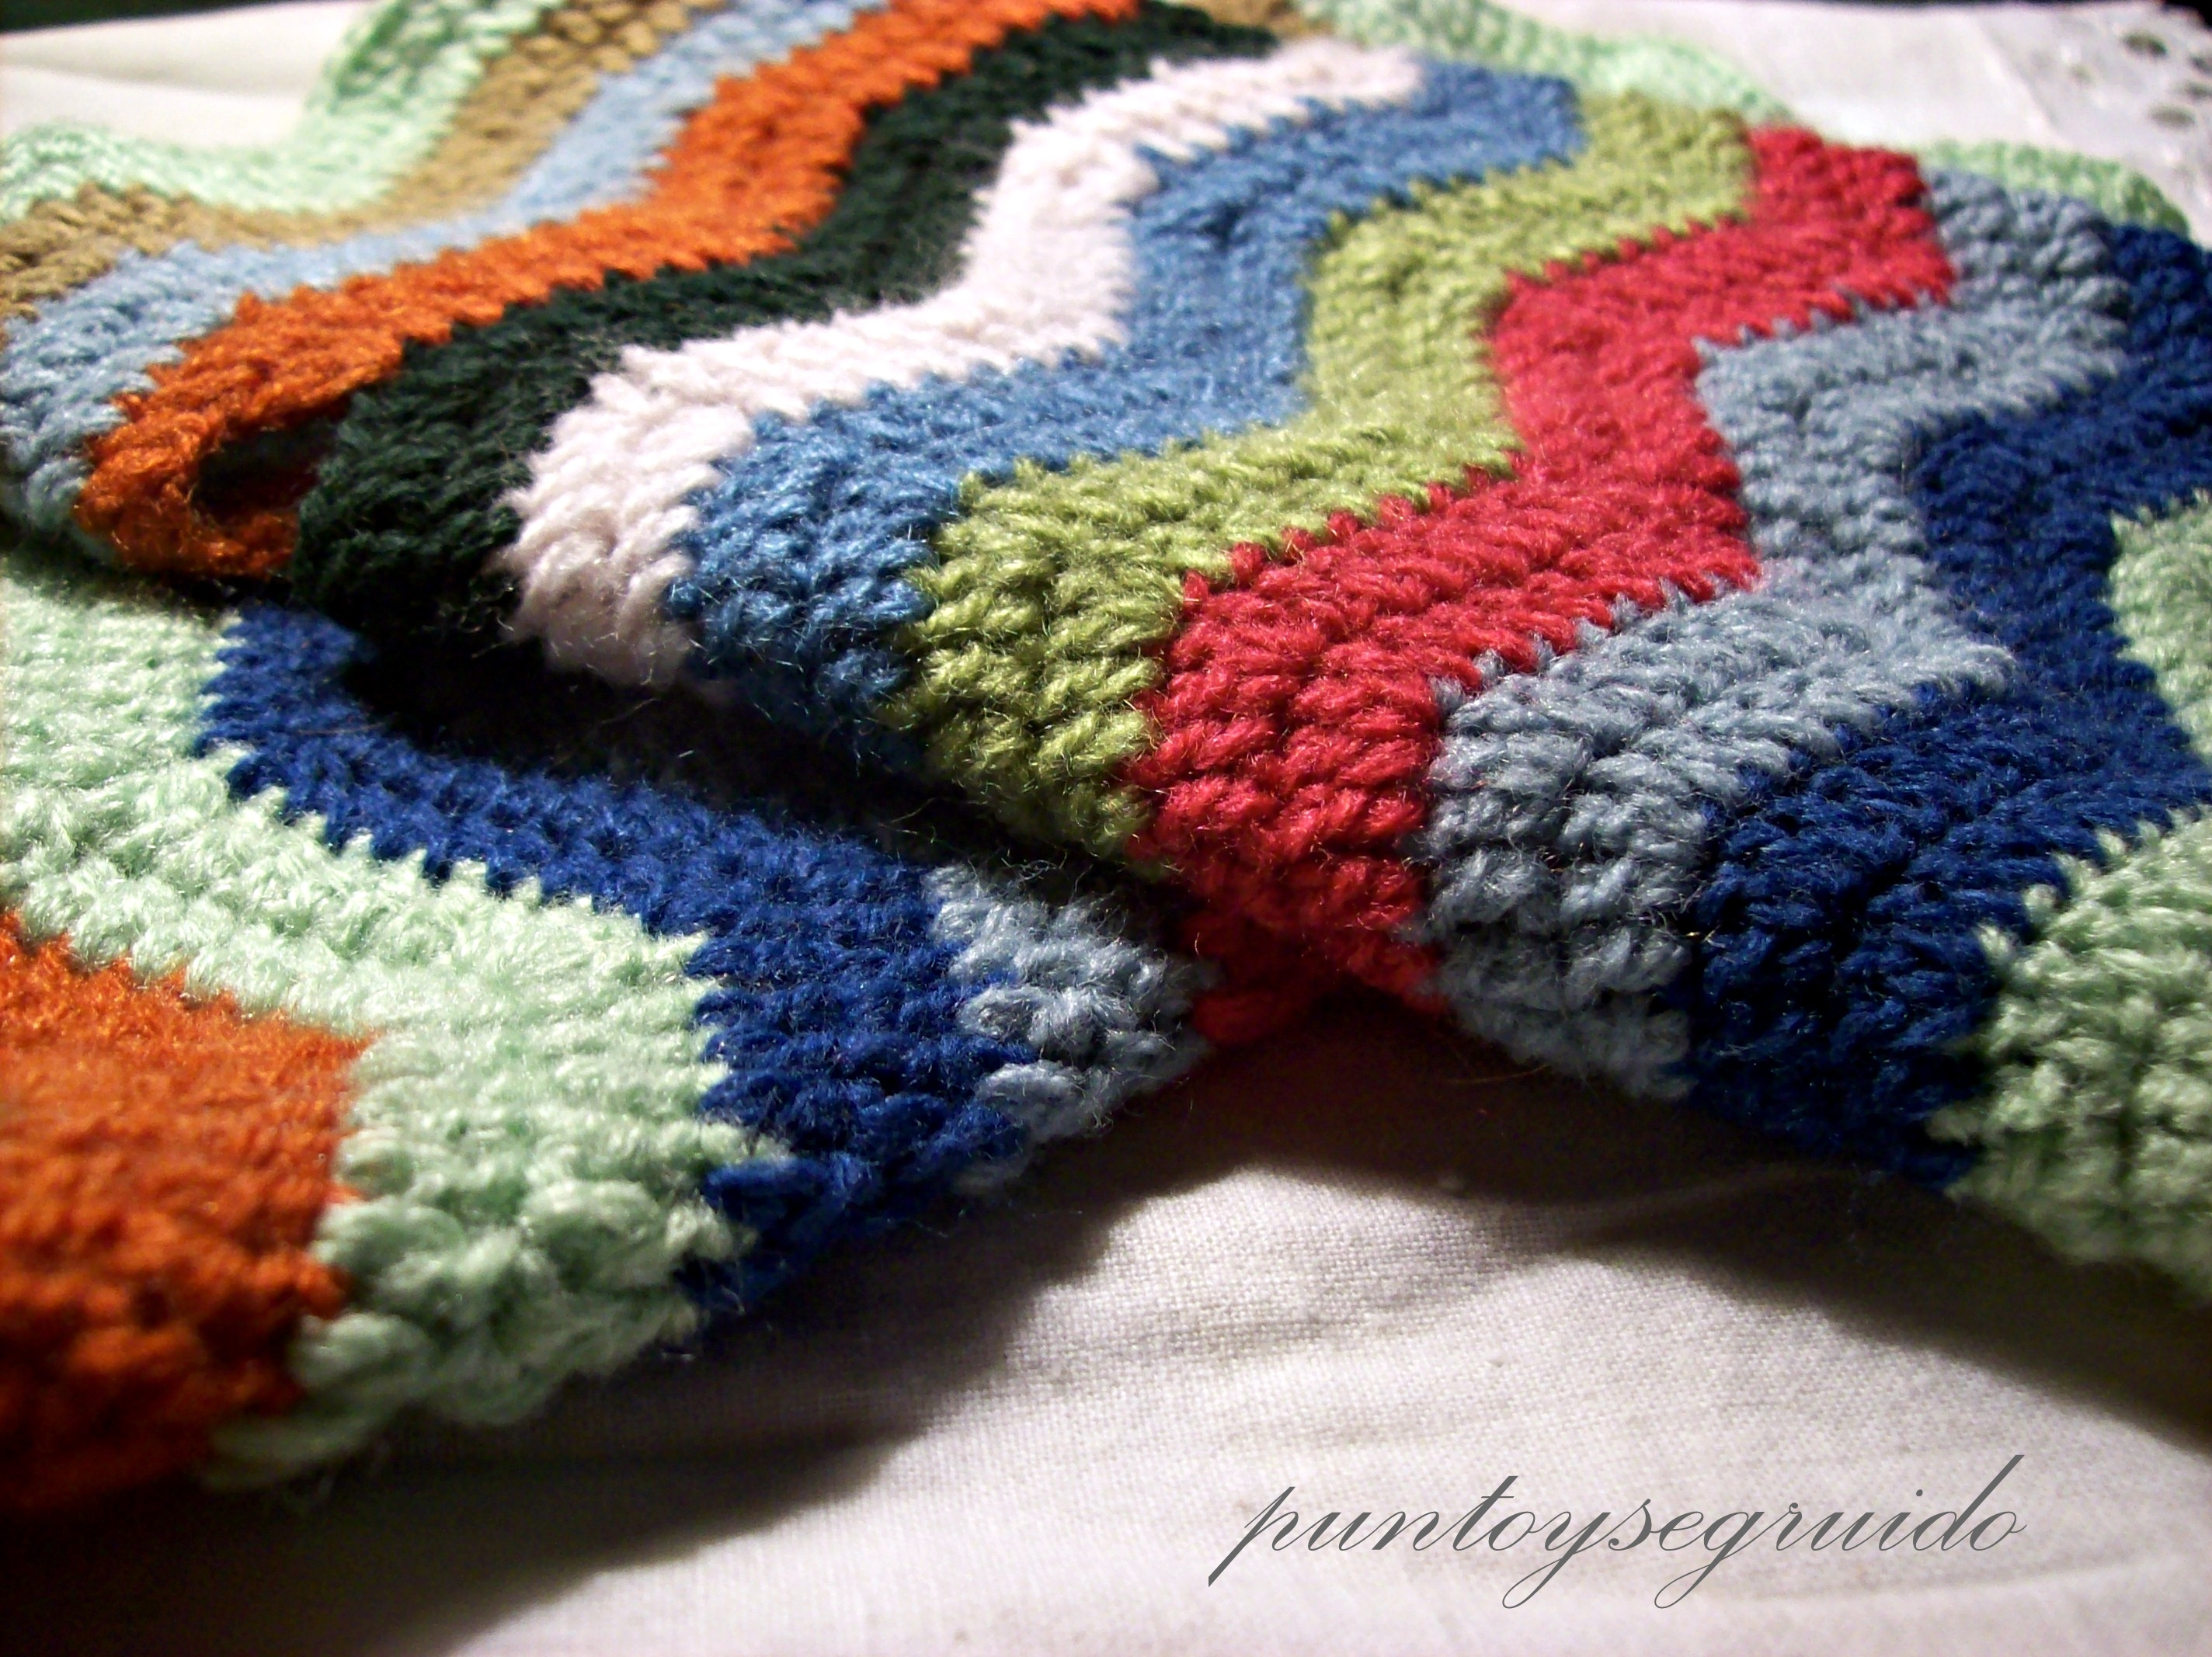 Crocheting Zig Zag Pattern : FREE CROCHET ZIG ZAG PATTERN - Crochet - Learn How to Crochet